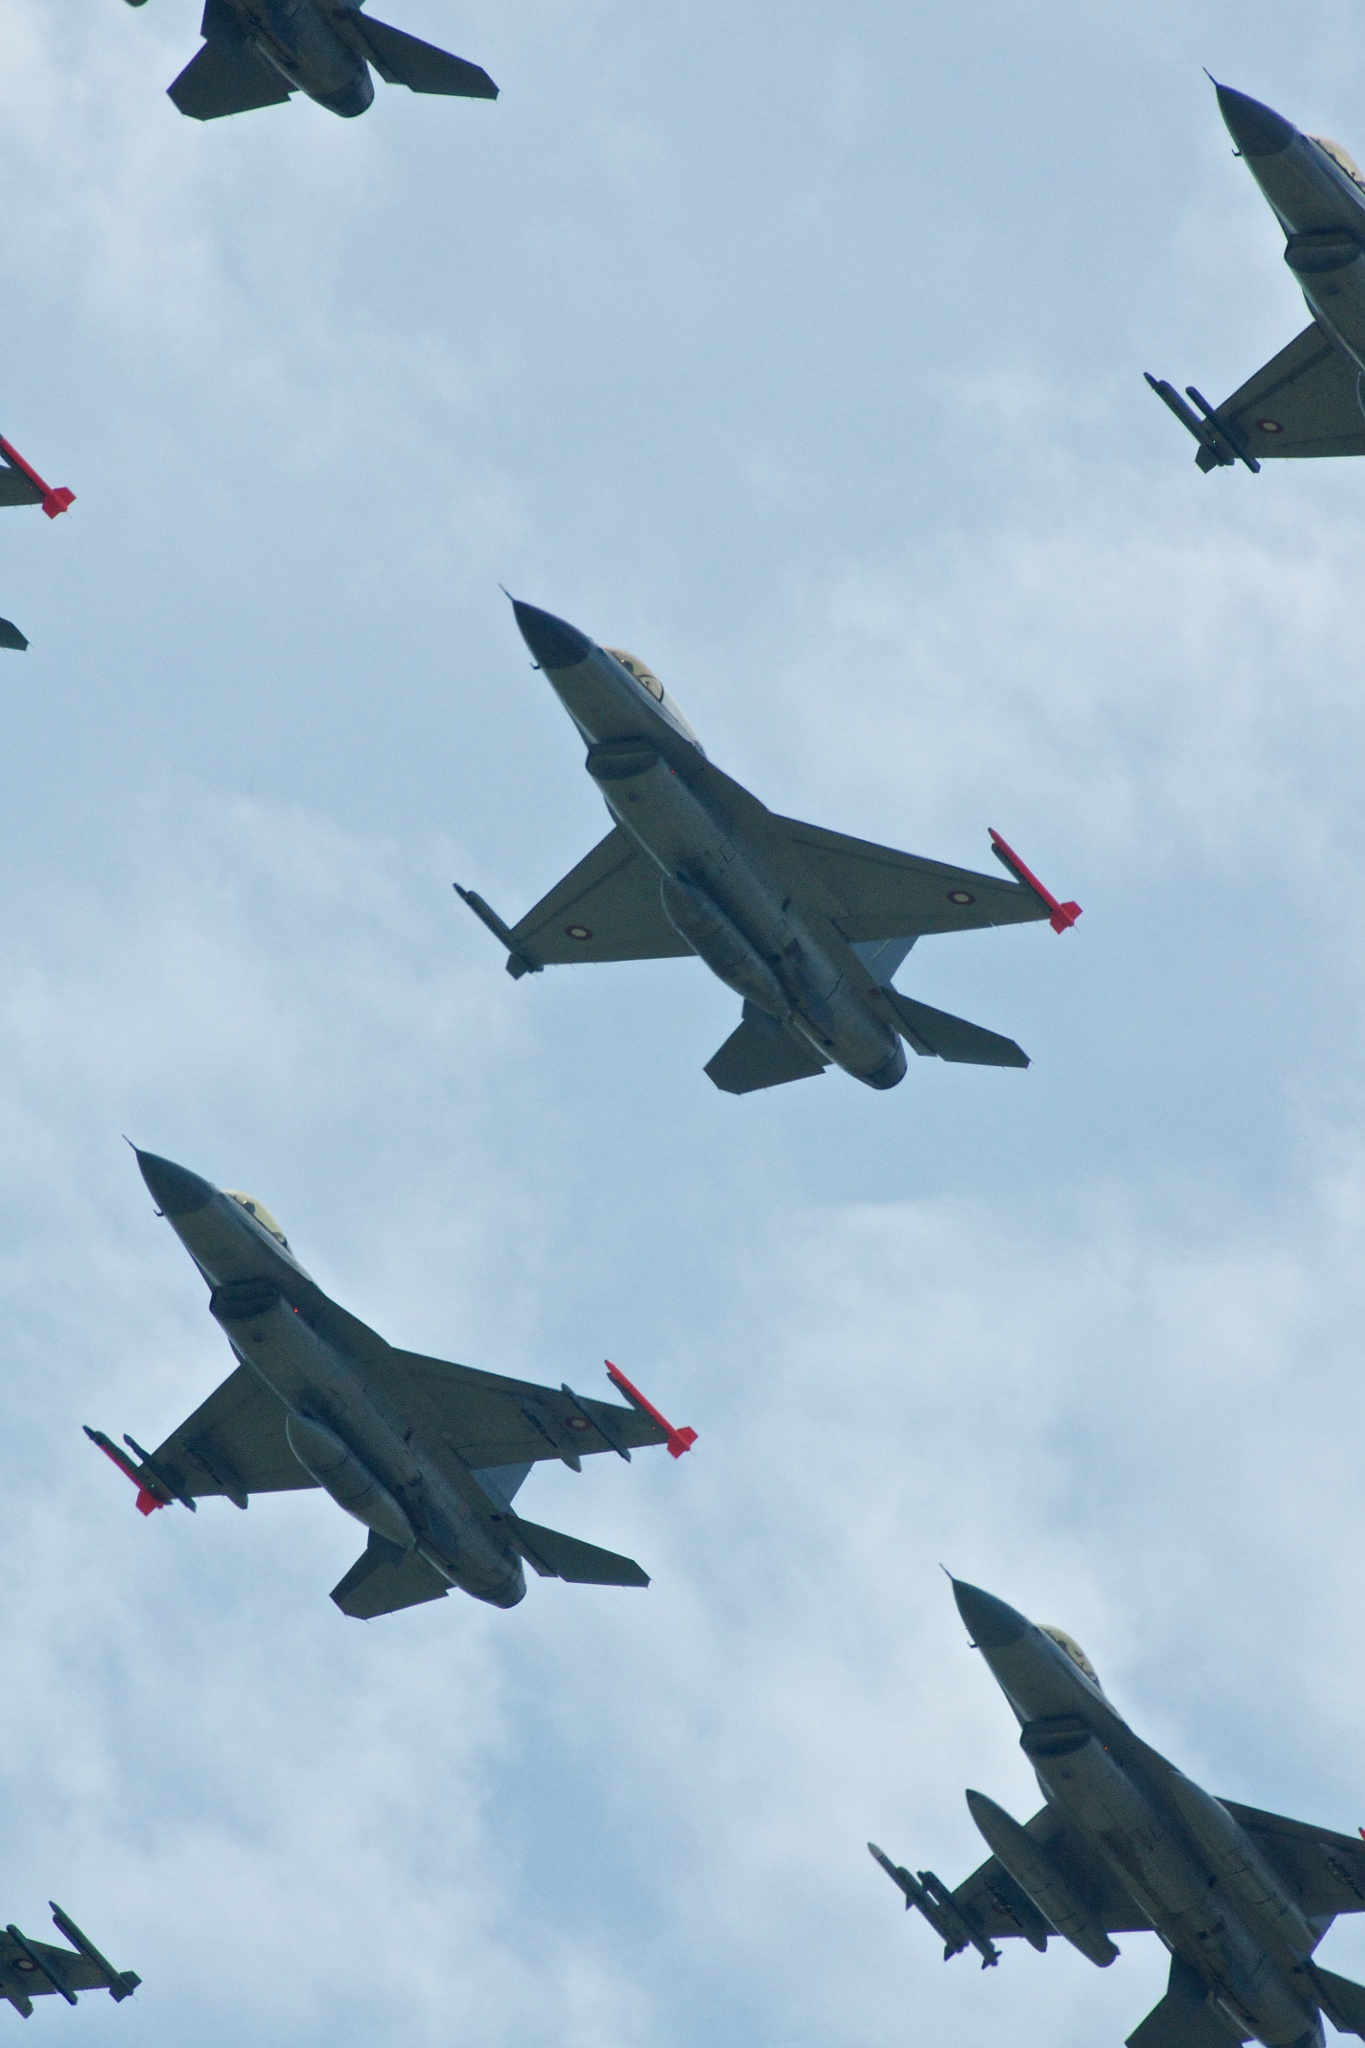 In formation. by Tue Romanow